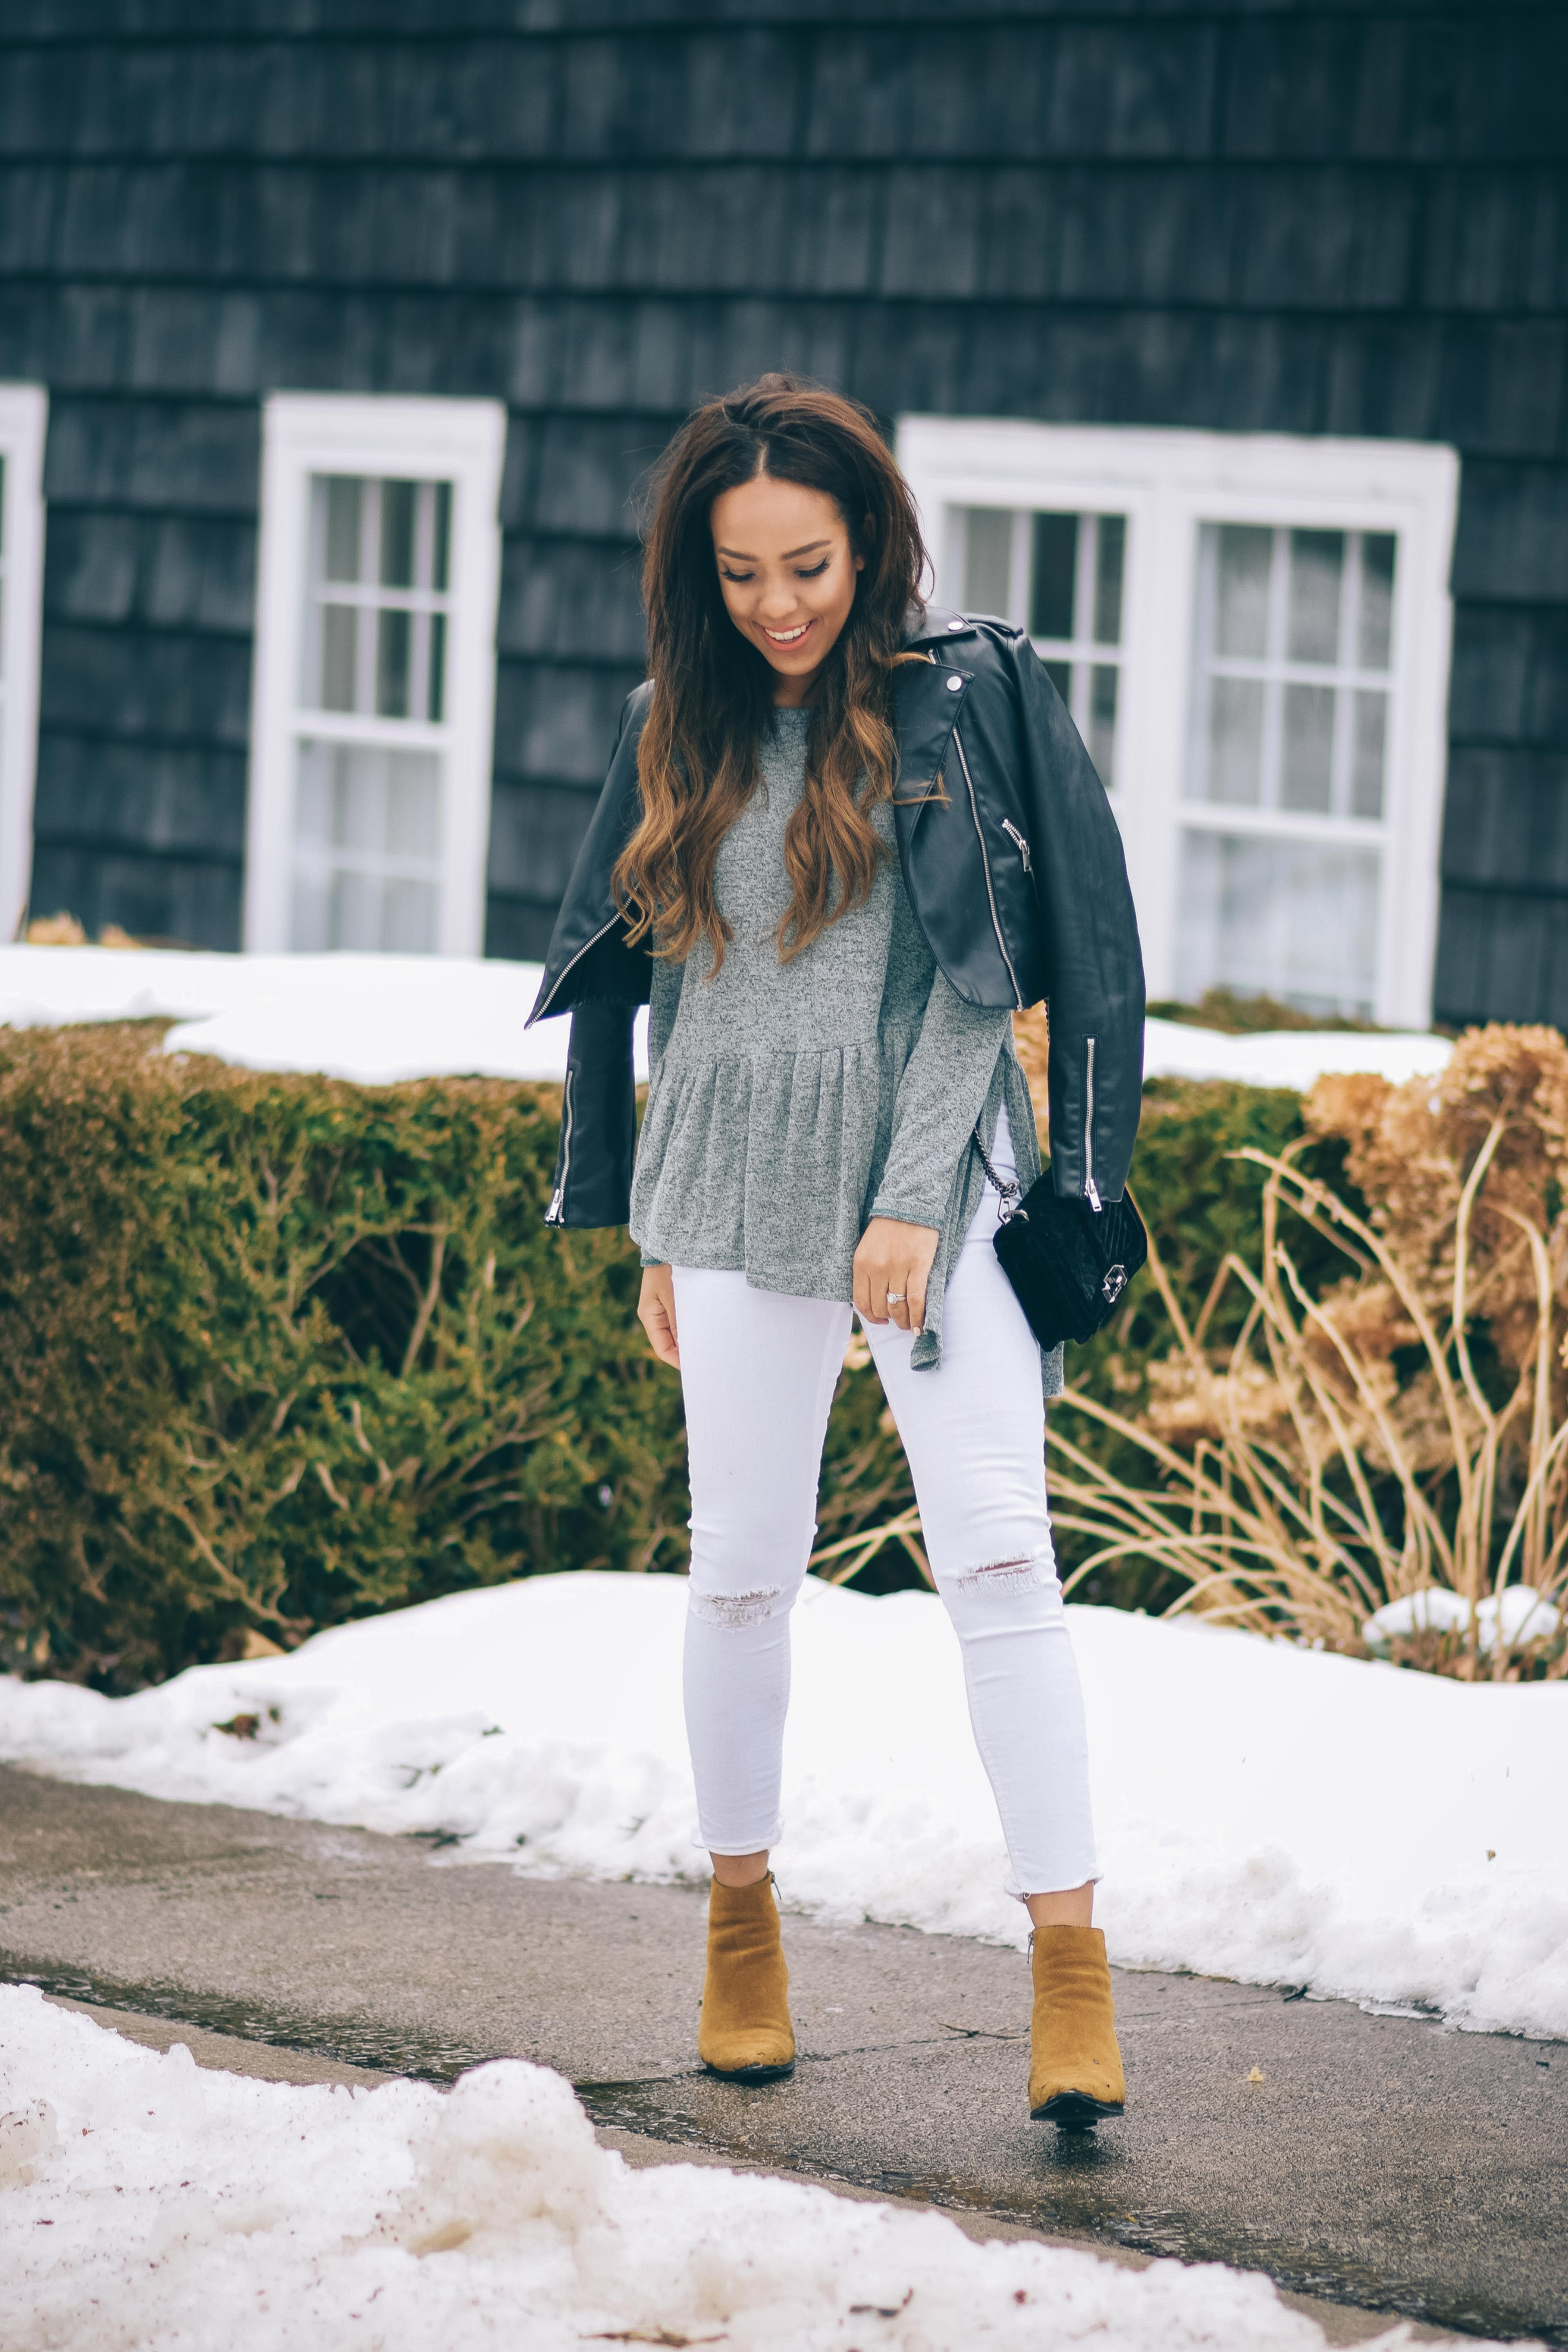 Top 5 Transitional Pieces for Spring